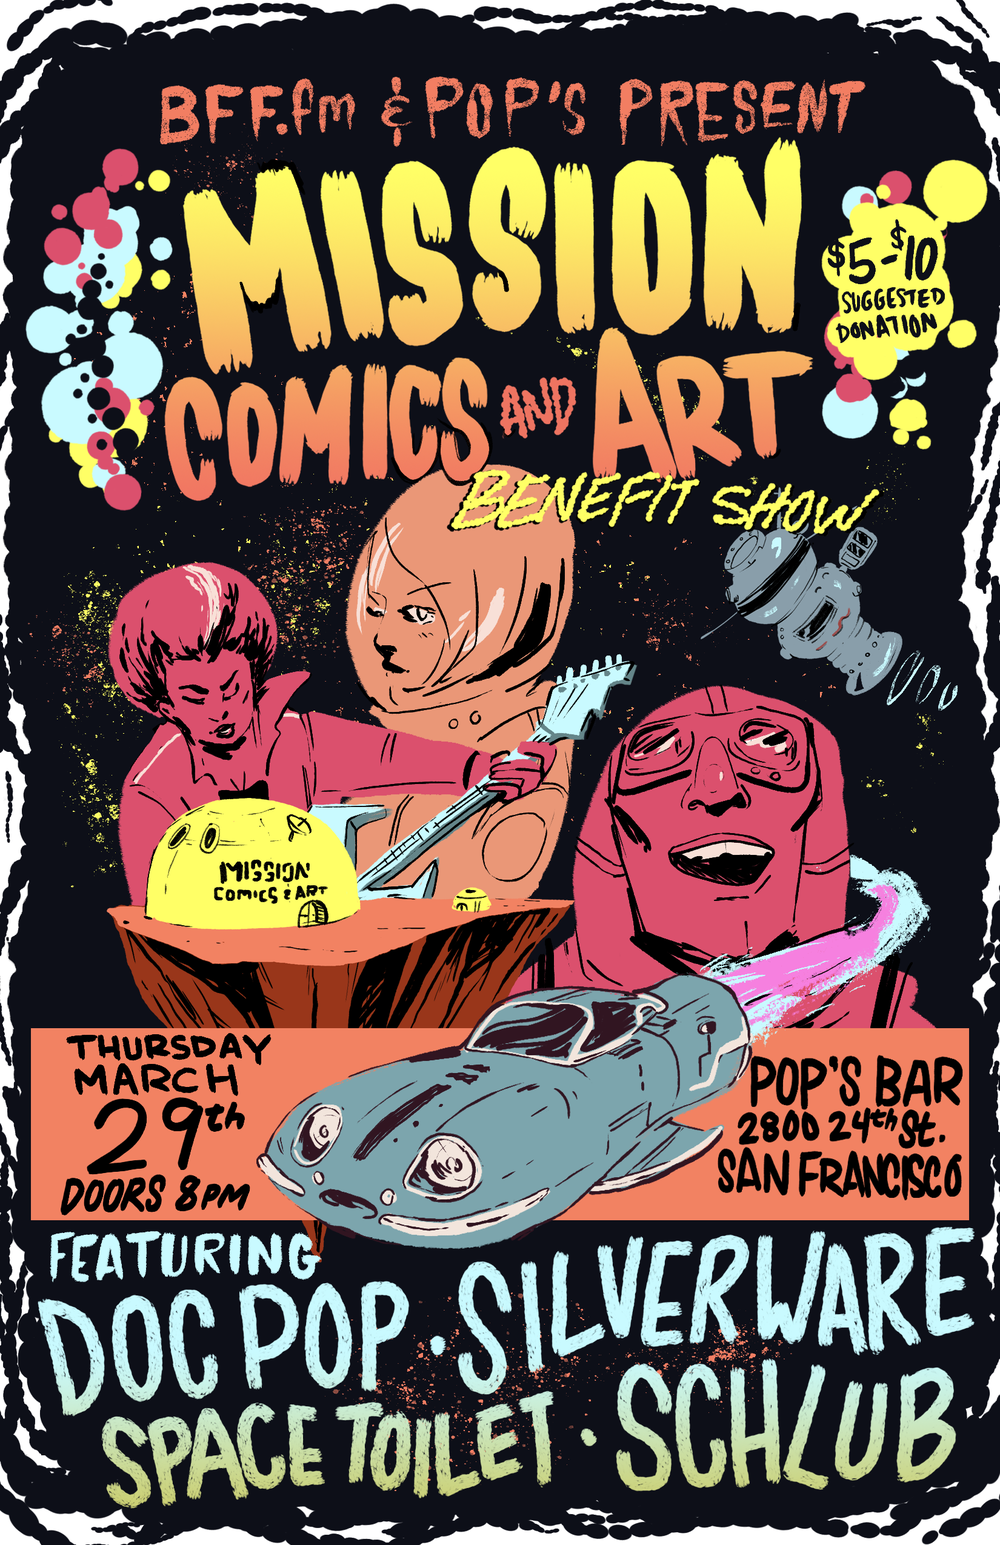 Mission Comics Benefit Show Poster